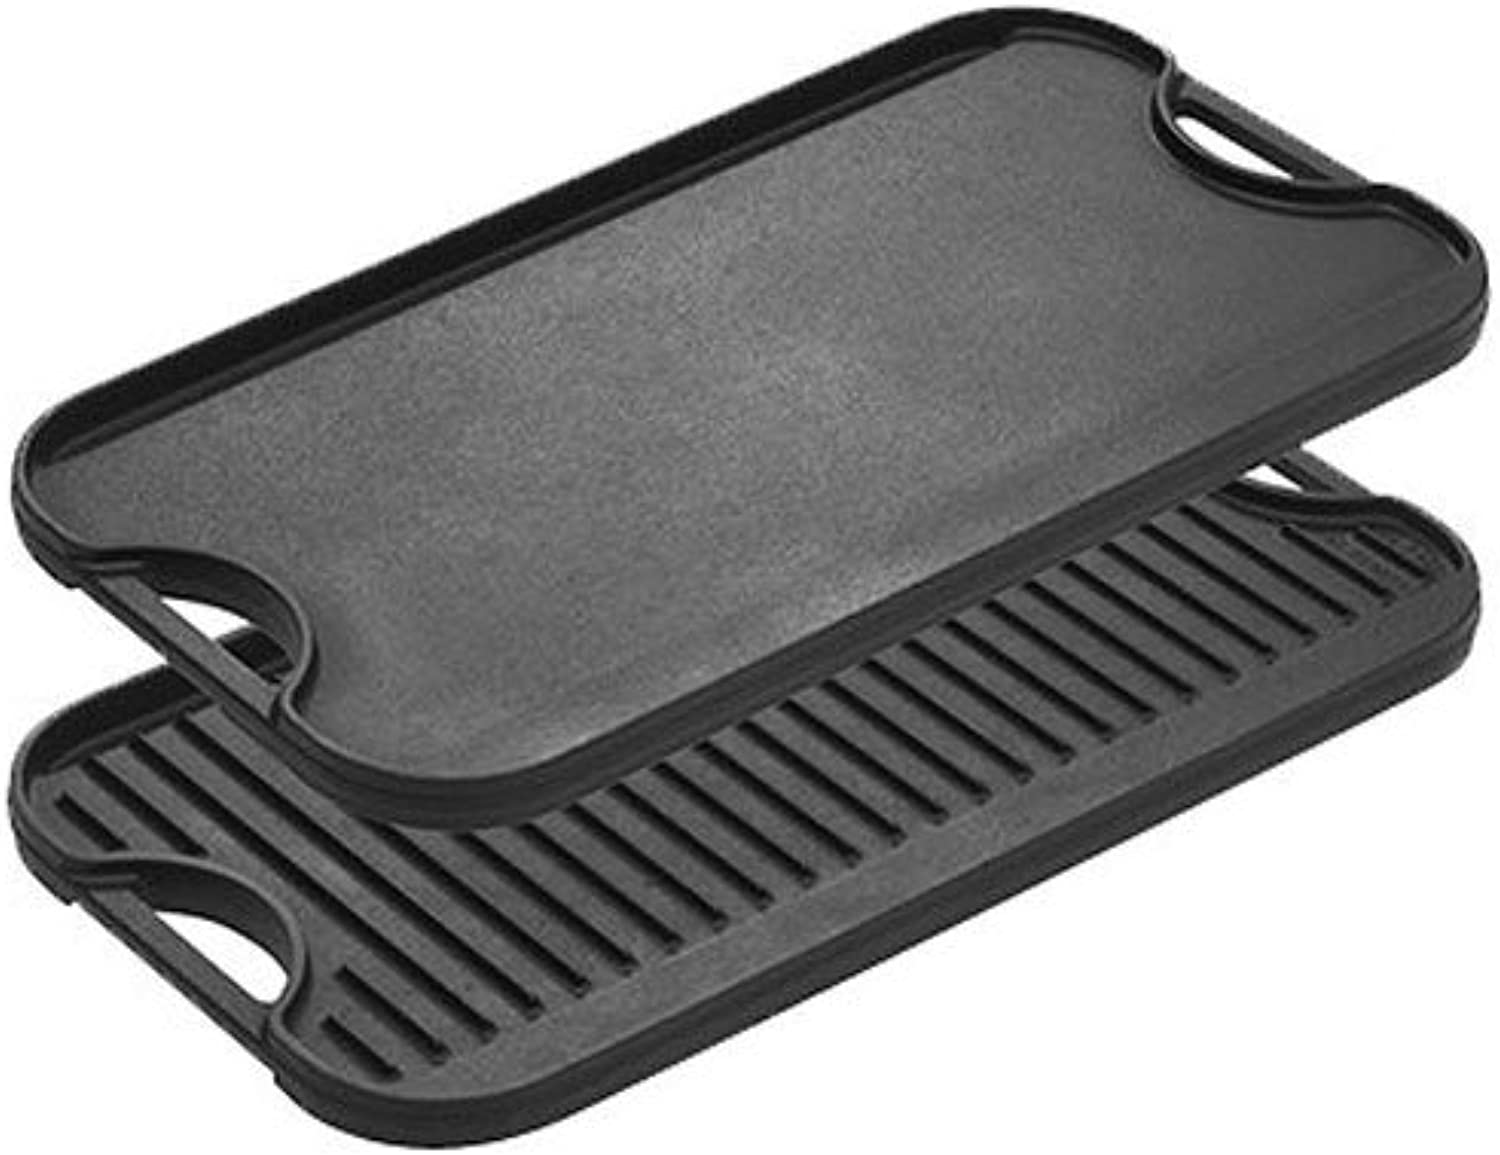 Lodge LPGI3 Pro-Grid Cast Iron Reversible 20  x 10  Grill Griddle Pan with Easy-Grip Handles 10  x 20